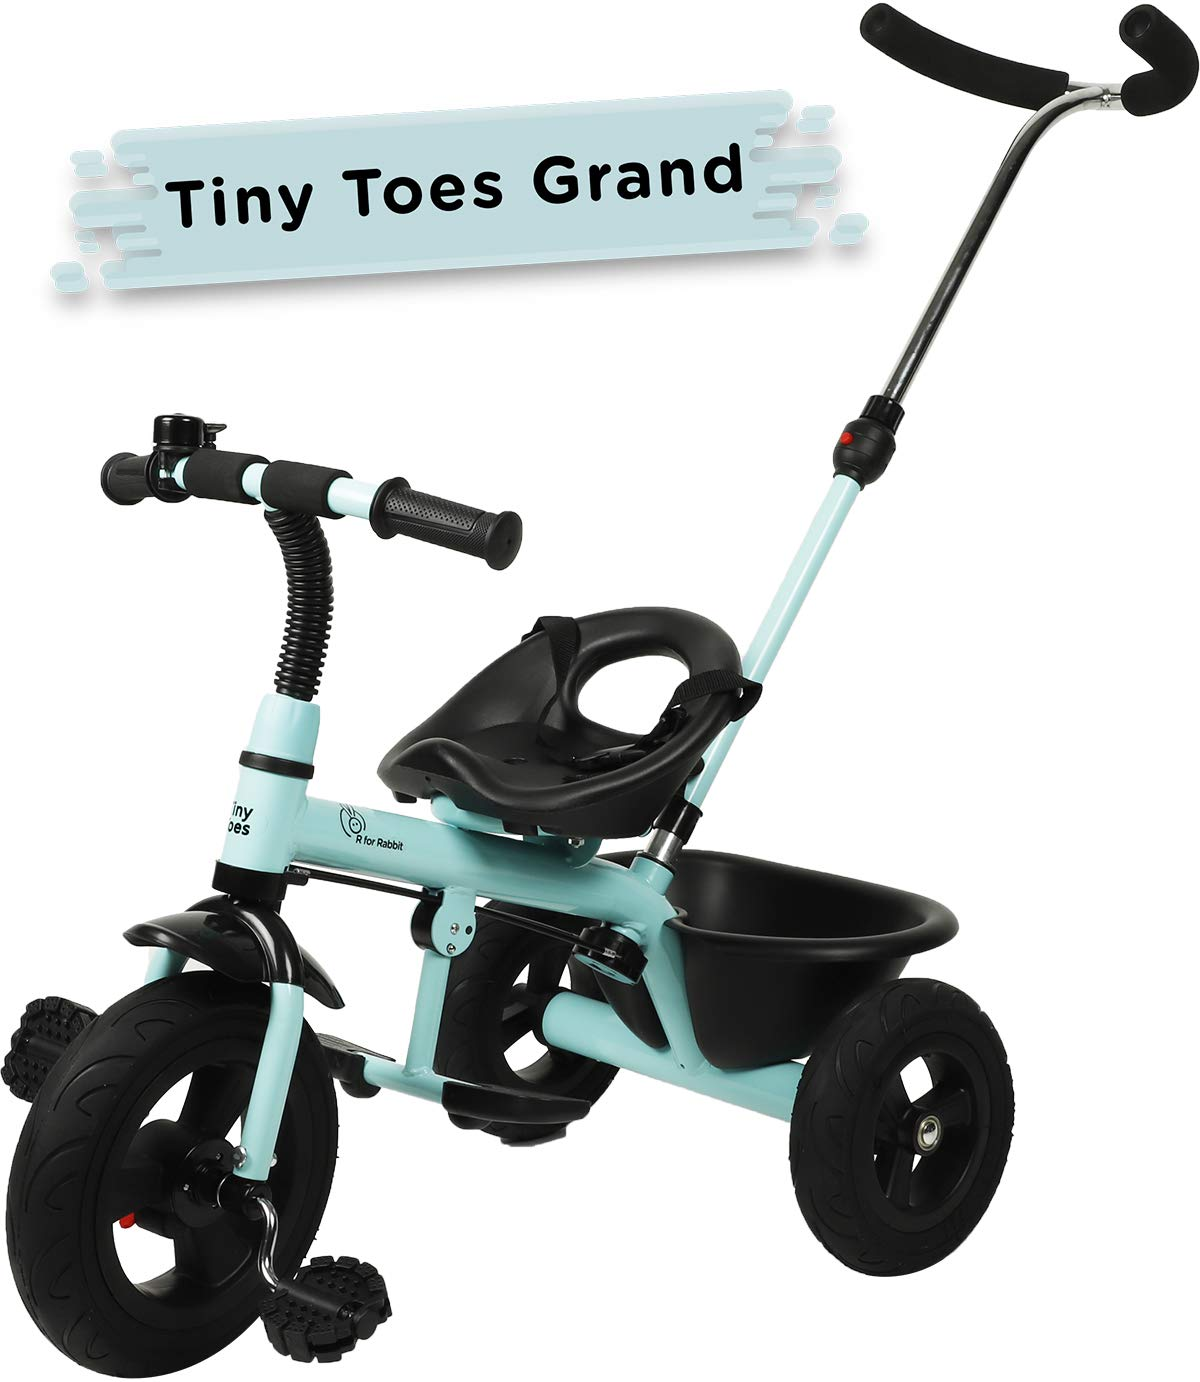 R for Rabbit Tiny Toes Grand Smart Plug and Play Stylish Baby Tricycle Trike Cycle for Kids of 1.5 to 5 Years with Basket,Parentals Control & Rubber Wheels (Lake Blue) (B07HNC9SWL) Amazon Price History, Amazon Price Tracker